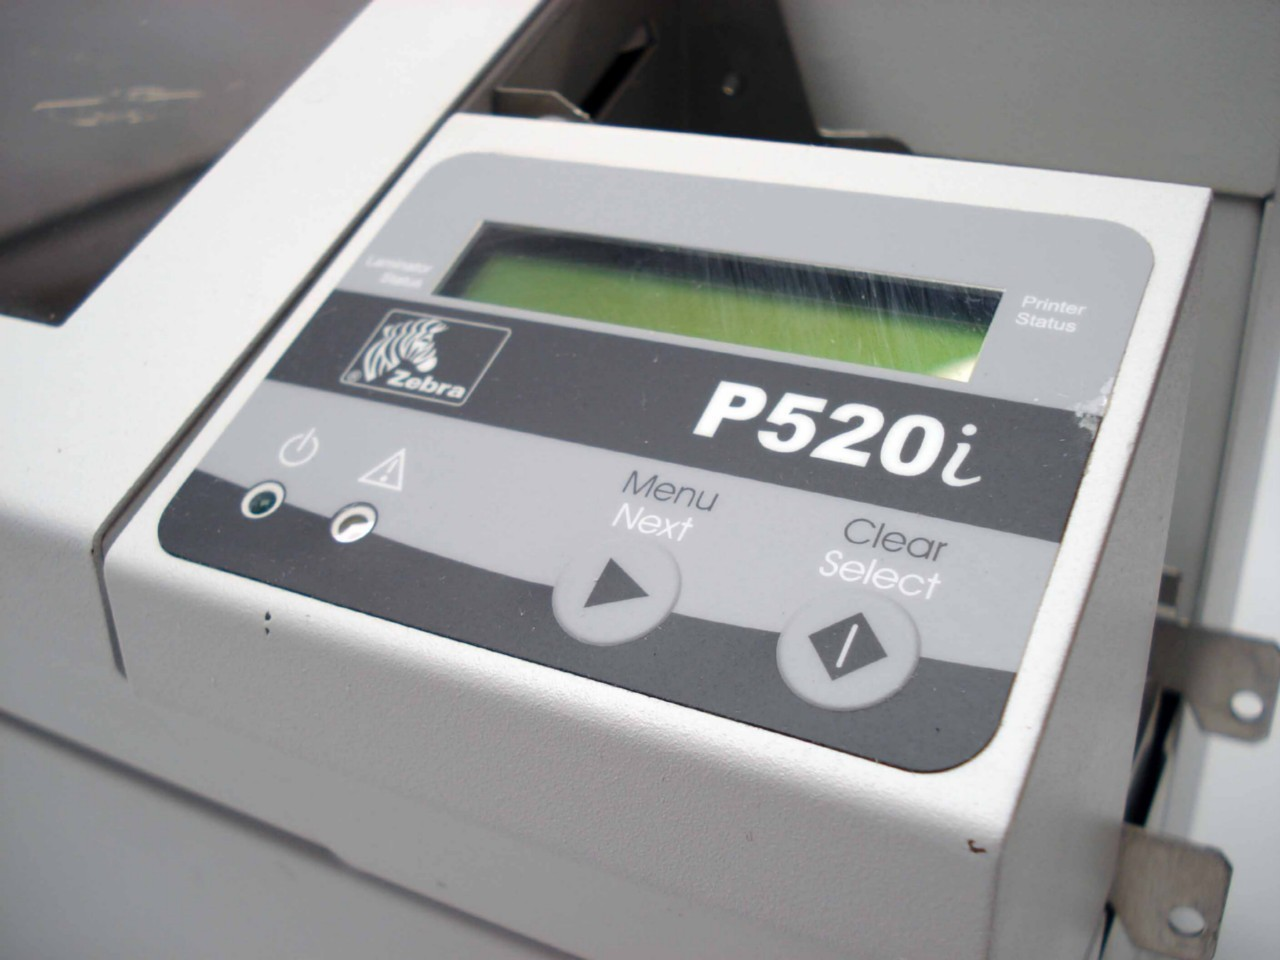 Zebra P520i ID Card Printer Dual-Sided with Lamination - DISCONTINUED